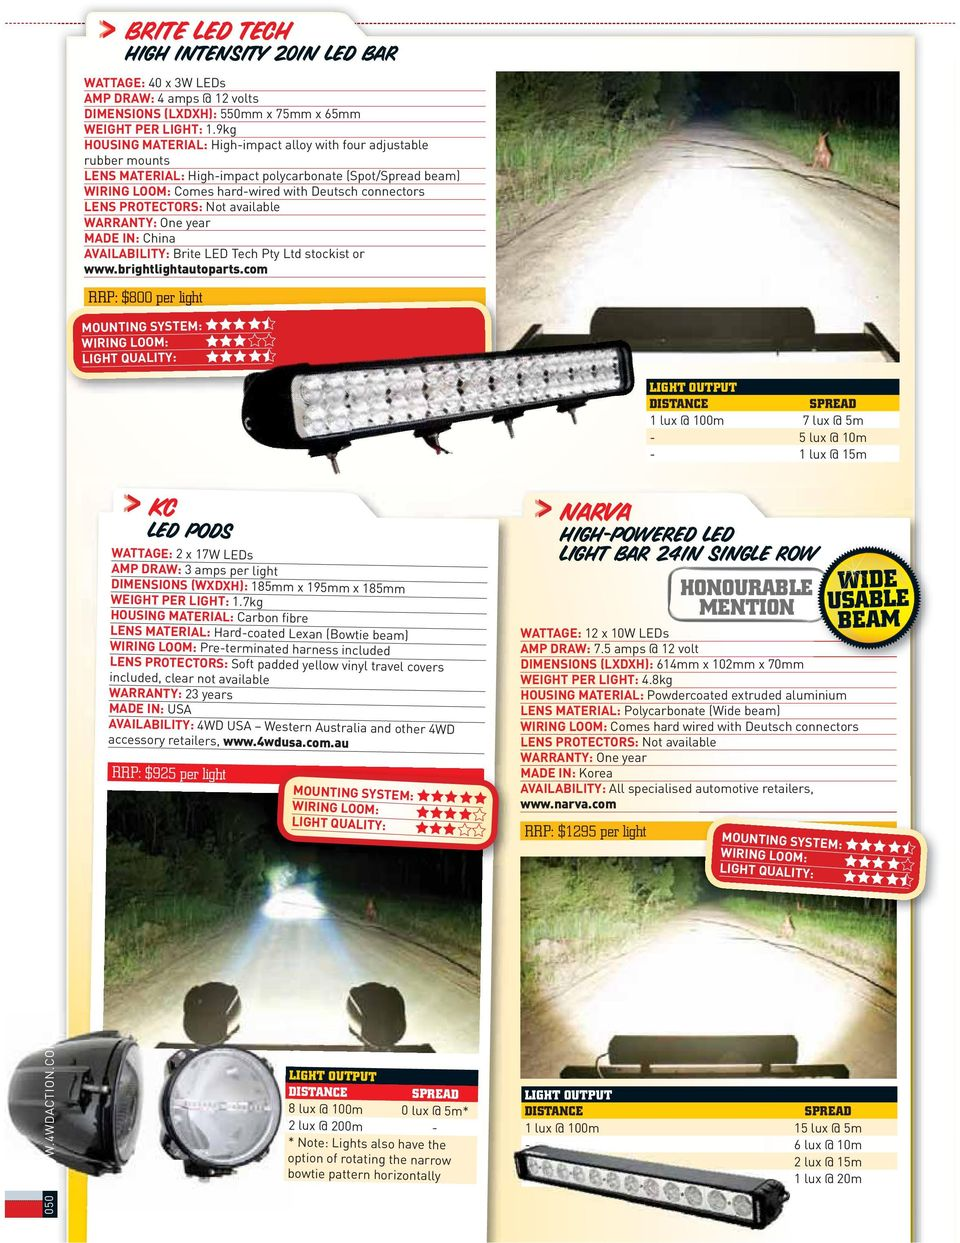 We Put 31 Sets Of Driving I Lights Through H The Wringer To 30m X 5 Core Cable Wiring Wire Trailer Parts Available Warranty One Year Made In China Availability Brite Led Tech Pty Ltd